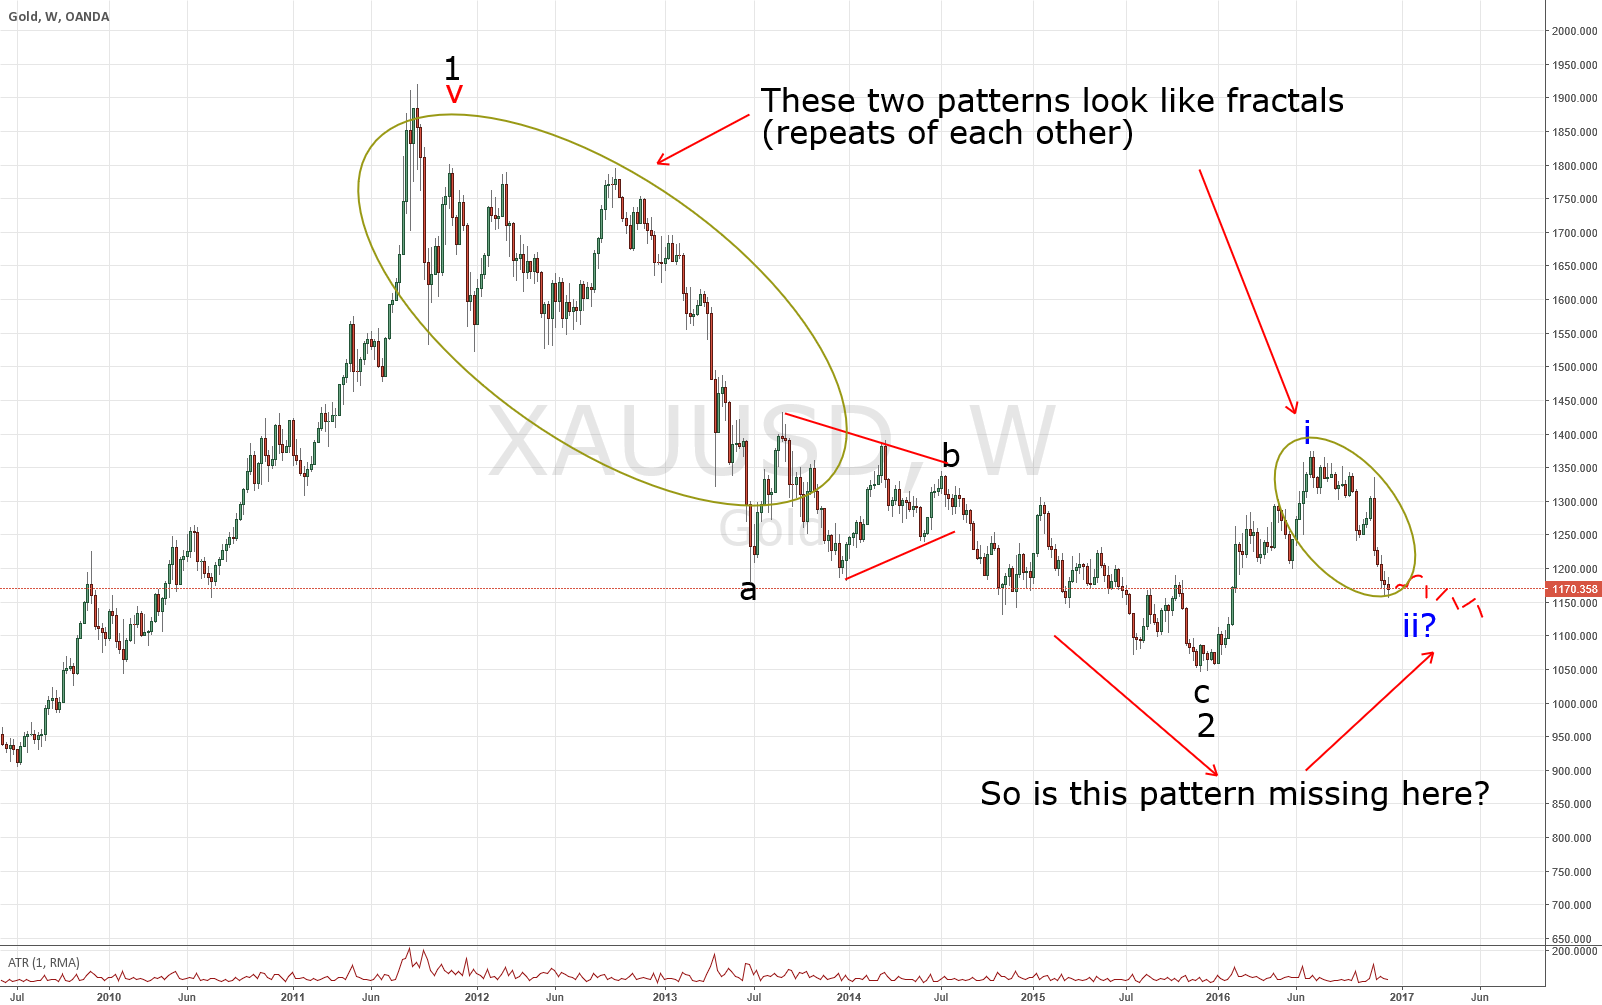 GOLD looking for a bottom. There may be an upswing here